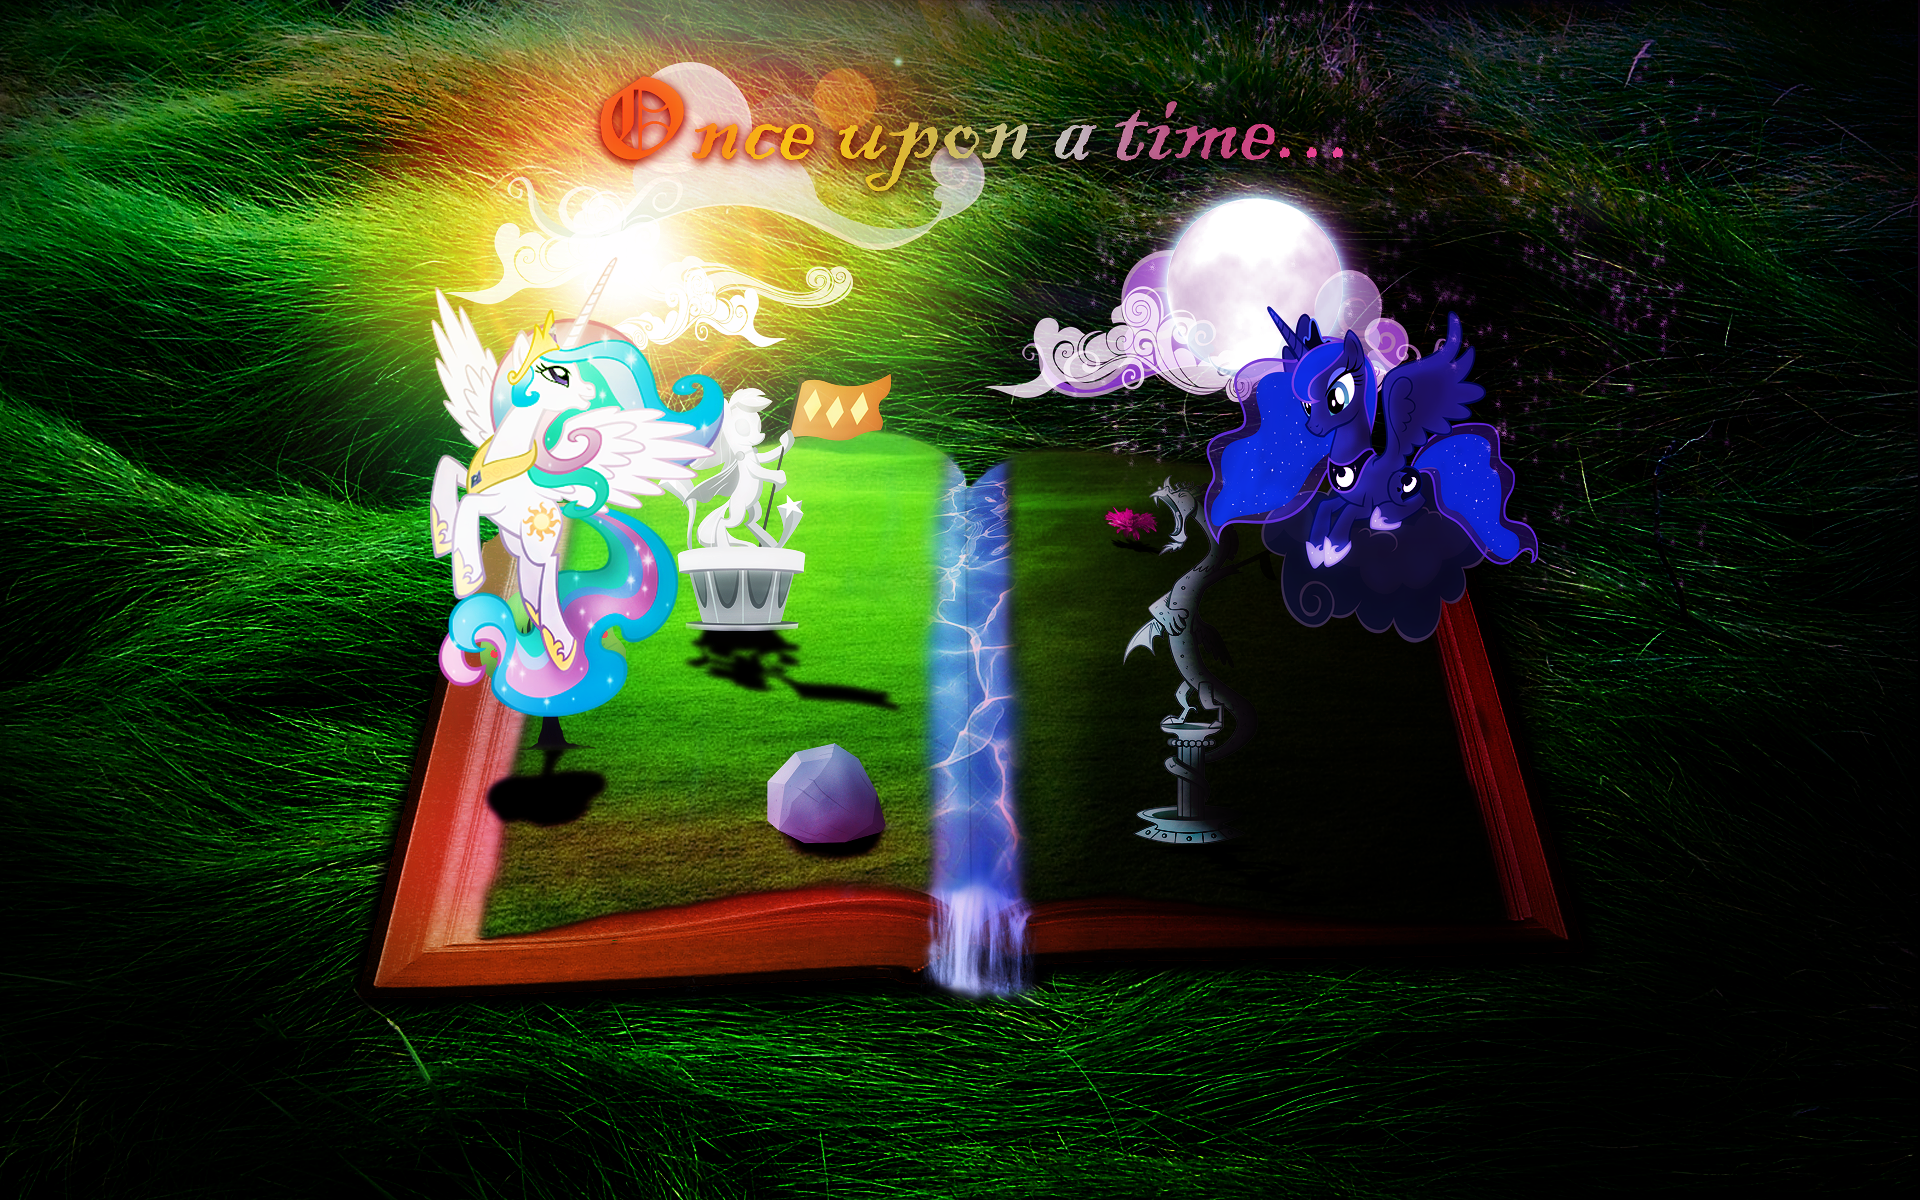 Once upon a time... by AxemGR, BlowingBomb, GuruGrendo, MisterLolrus, purplefairy456, Qsteel, Vectorshy and Vividkinz